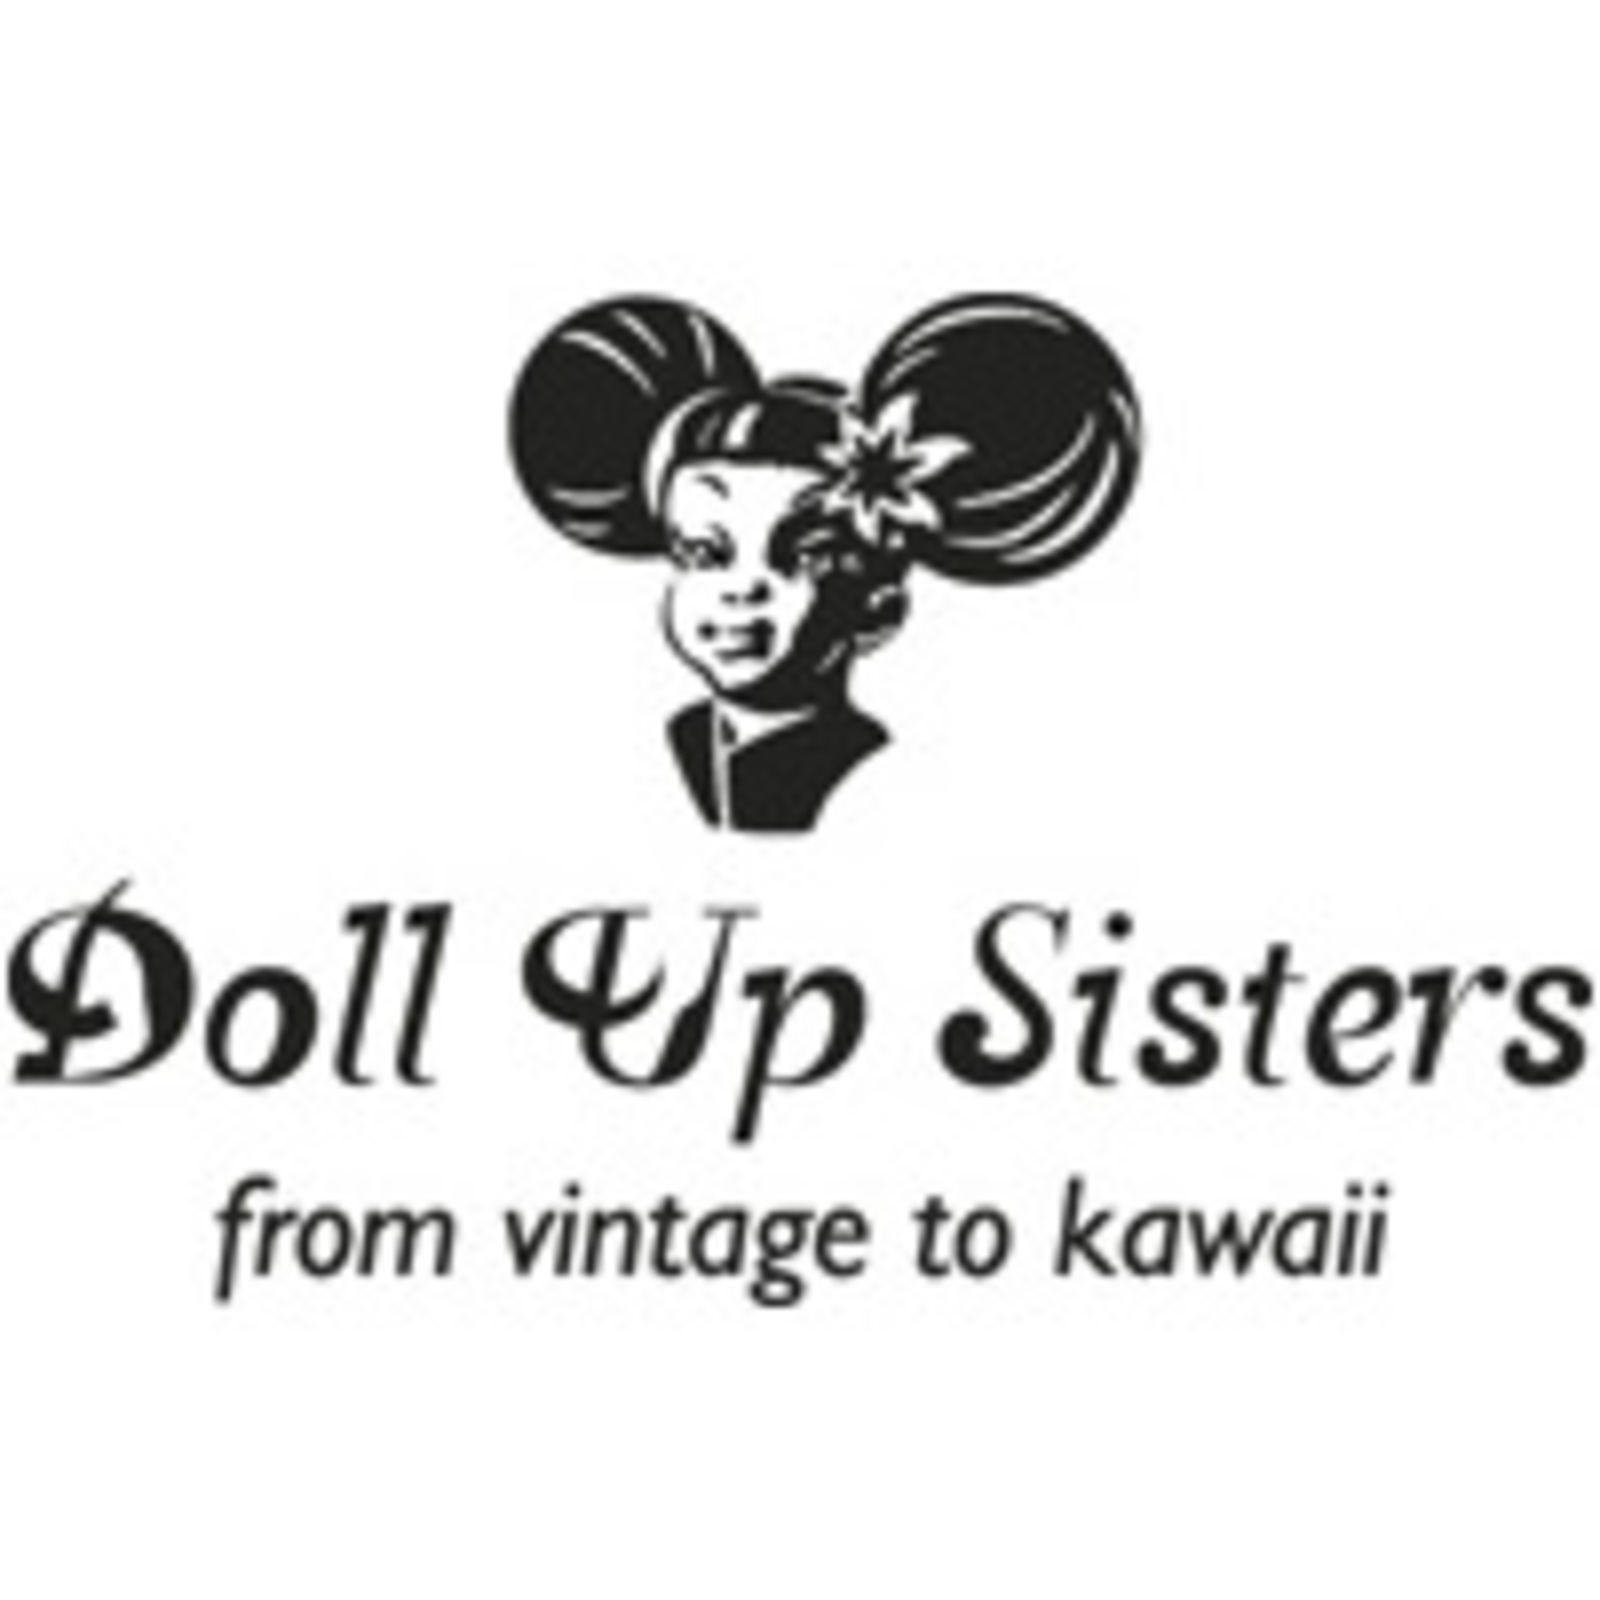 Doll Up Sisters